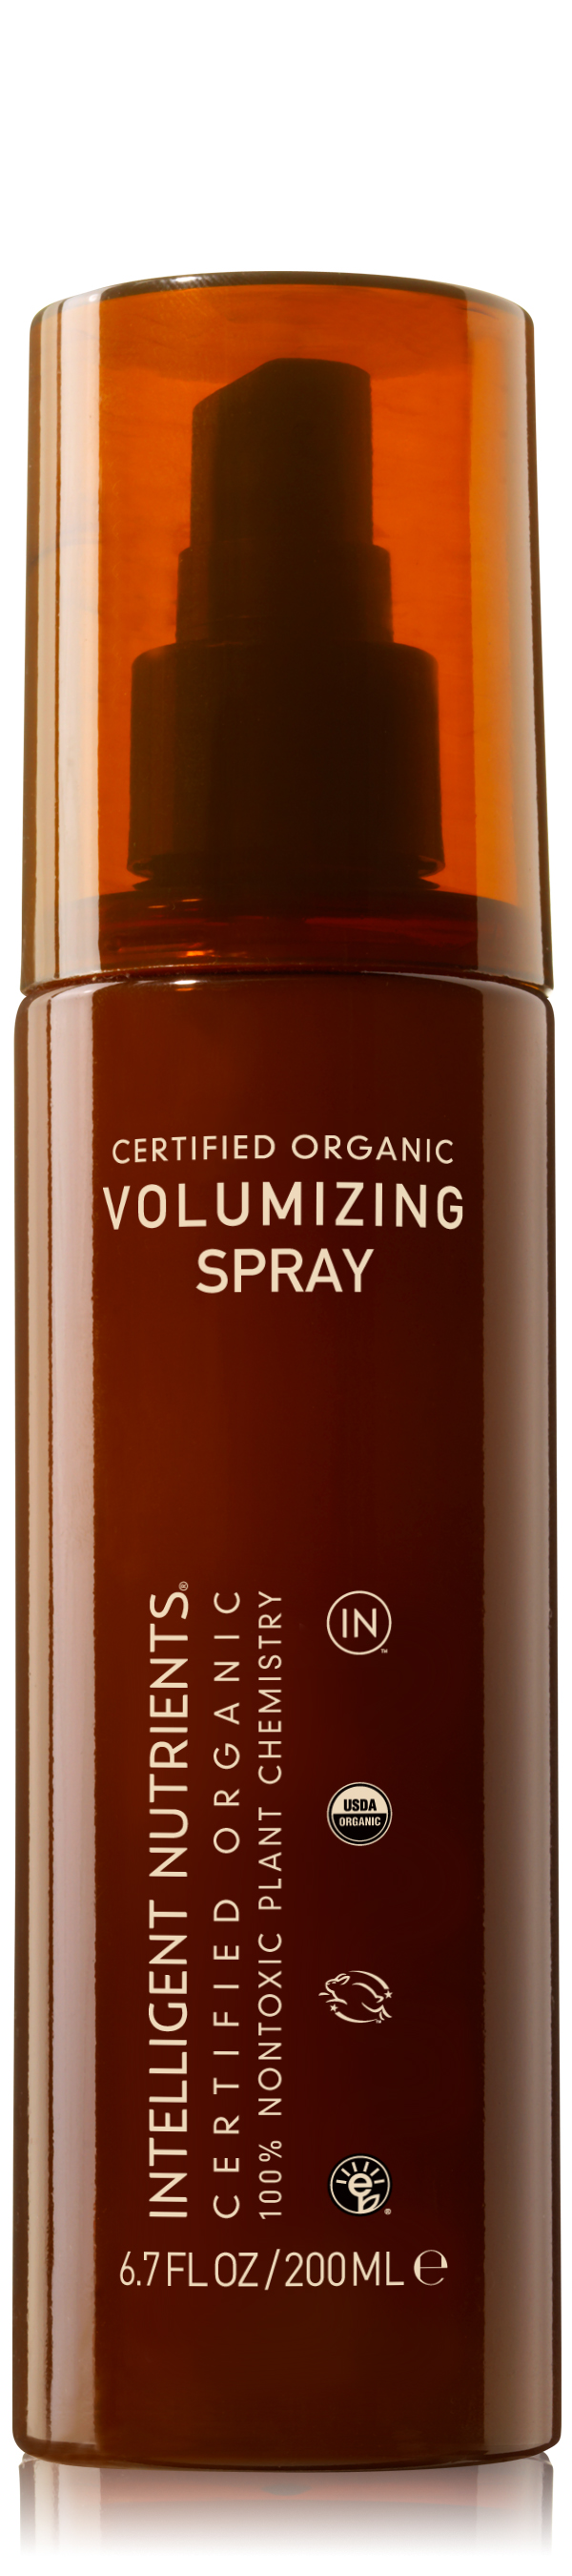 Volumizing Spray (DKK320/200ml)